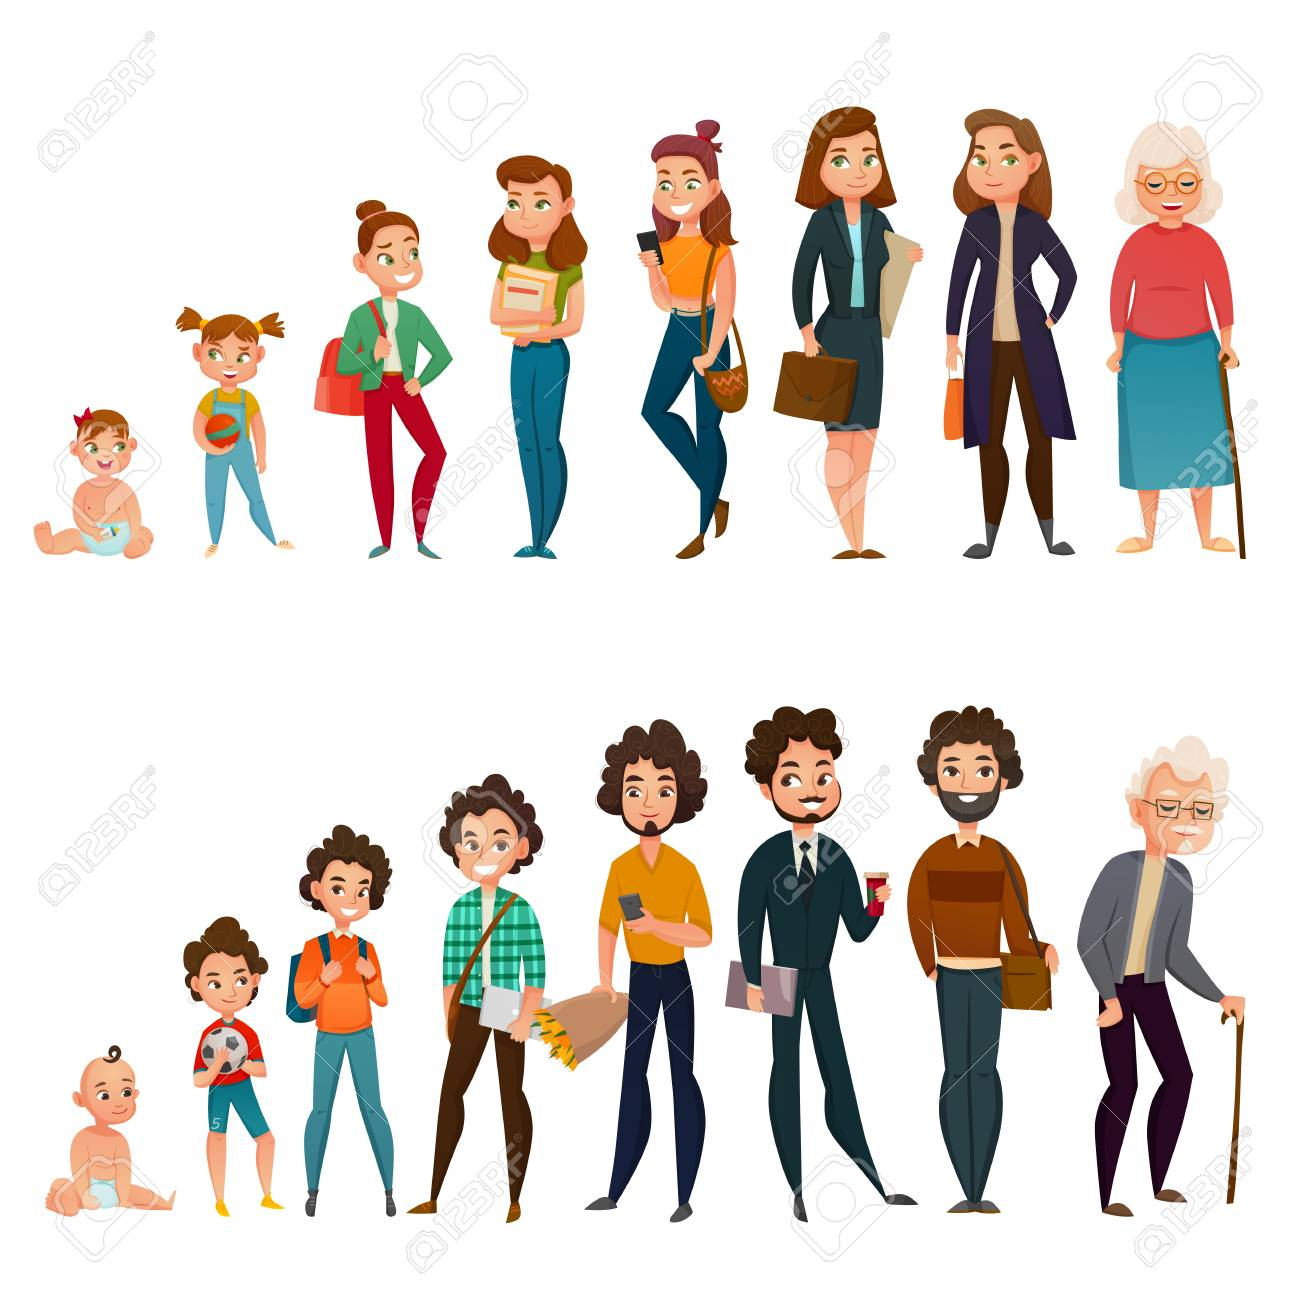 Human life cycle male and female set with childhood, school time, maturity and aging isolated vector illustration - 88480077